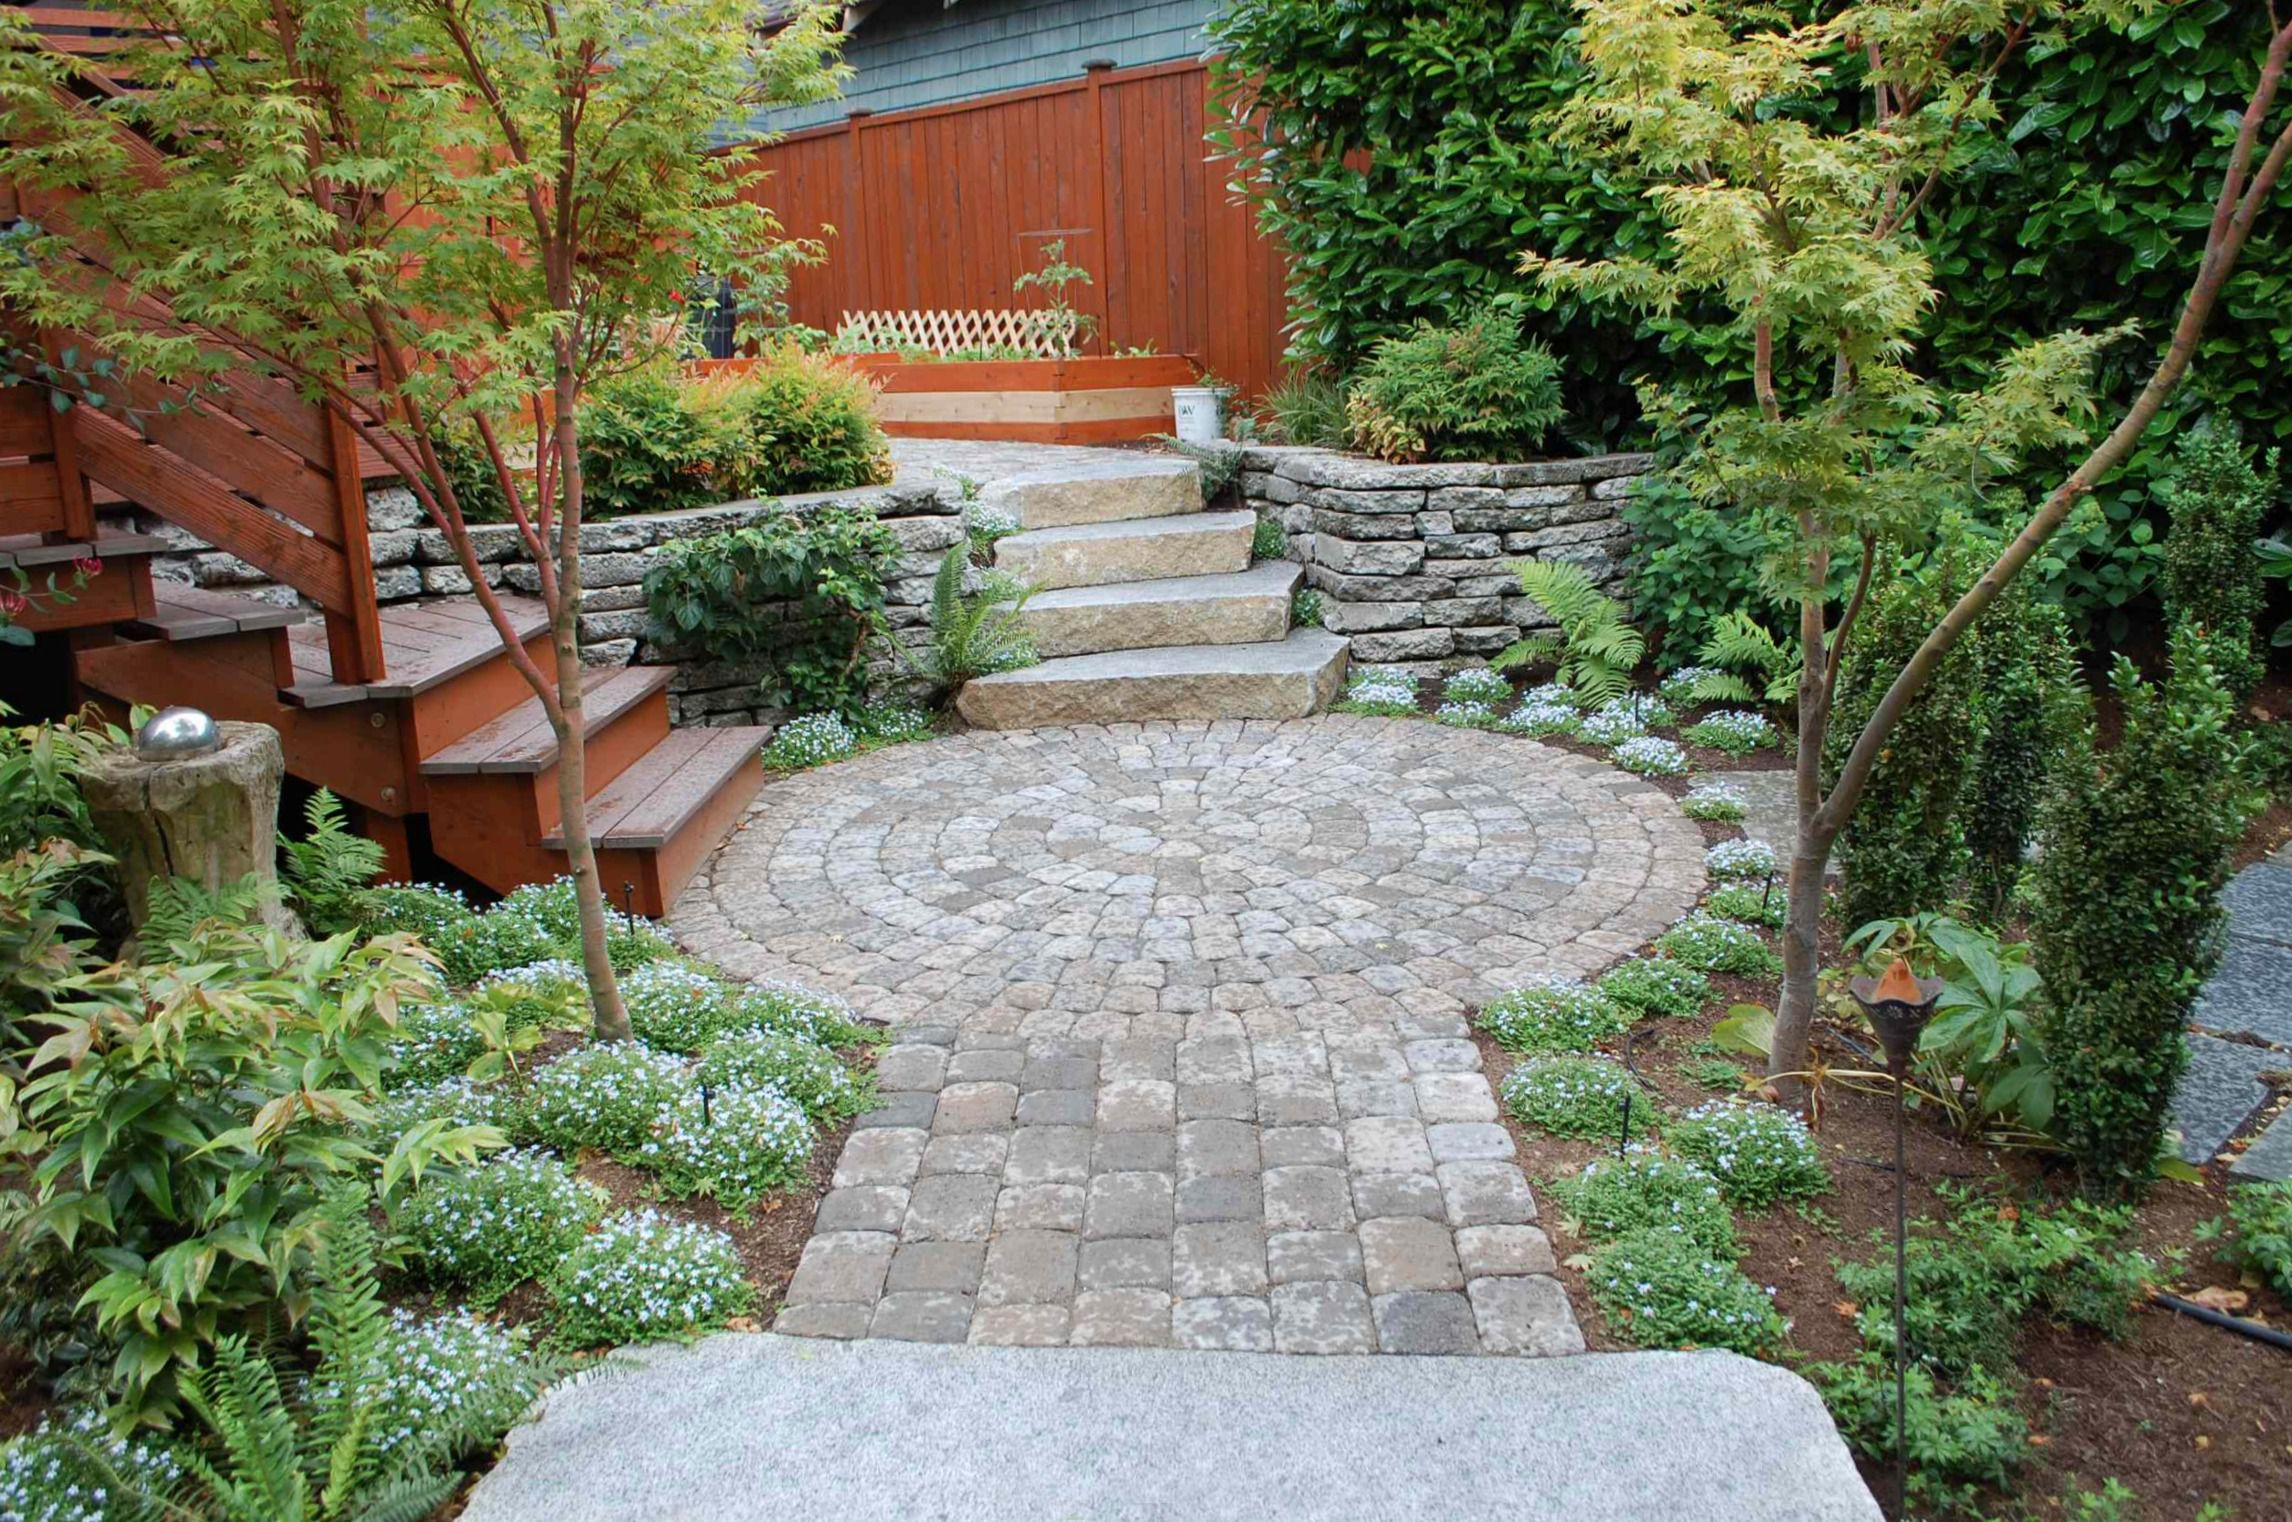 25 Perfect Patio Paver Design Ideas on Small Backyard Brick Patio Ideas  id=63042